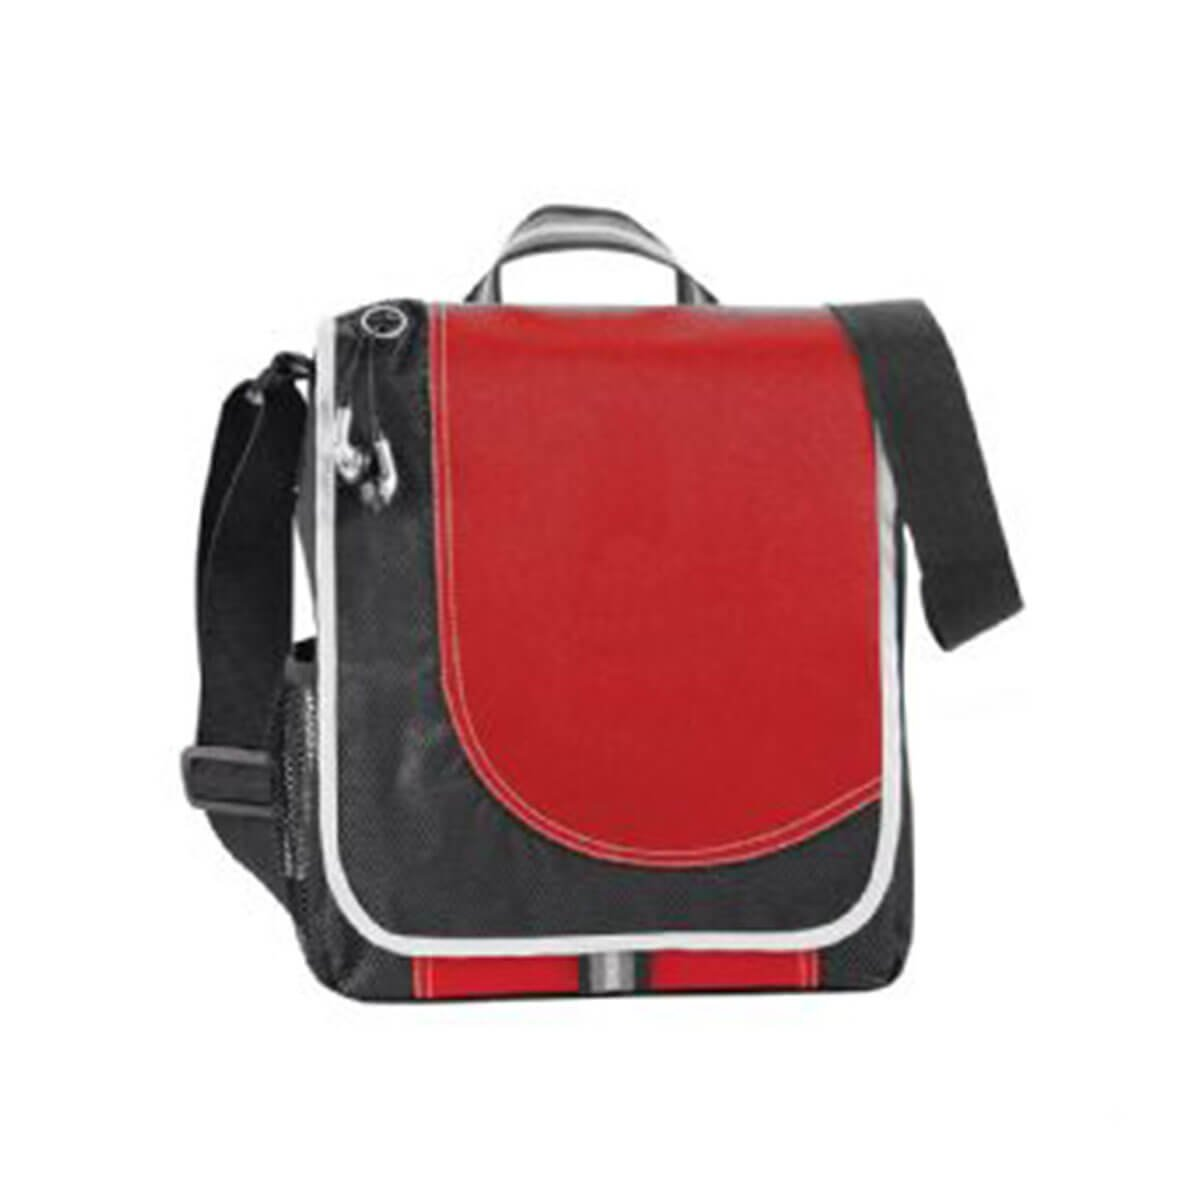 Boomerang Messenger Bag-Red and Black with White Trim.